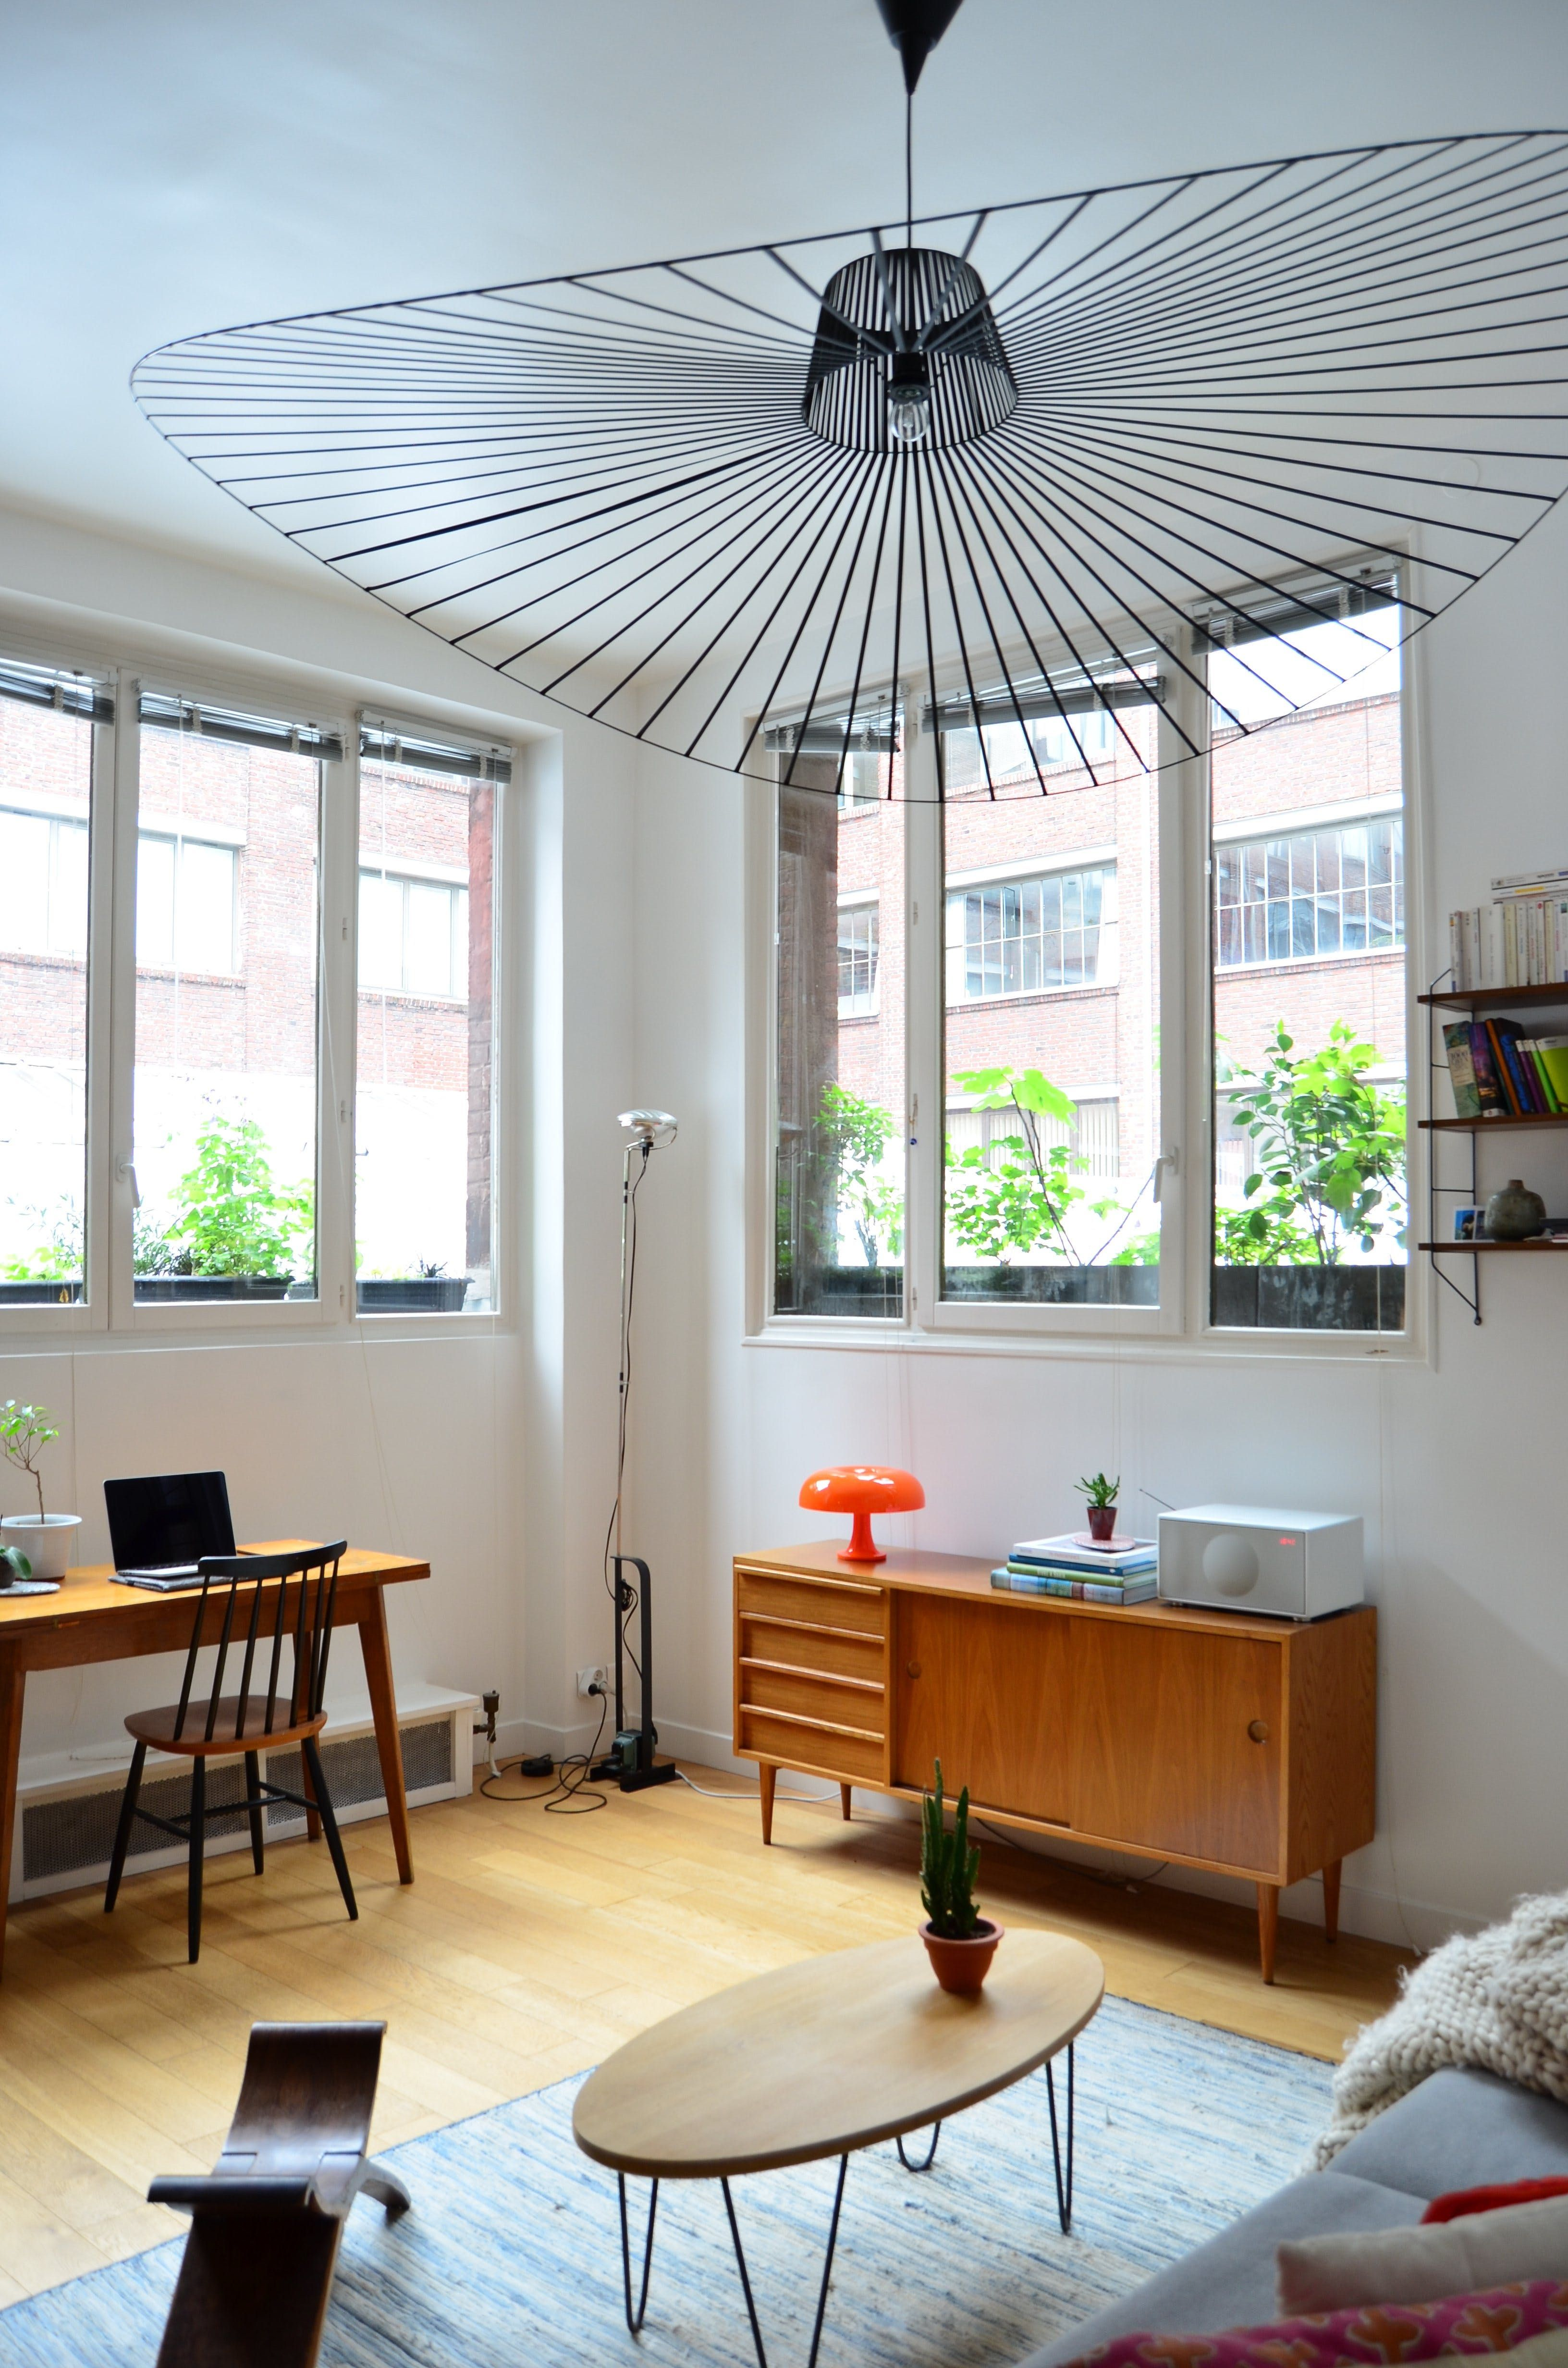 A (Seemingly) Counterintuitive Trick That's a Must for Small Spaces